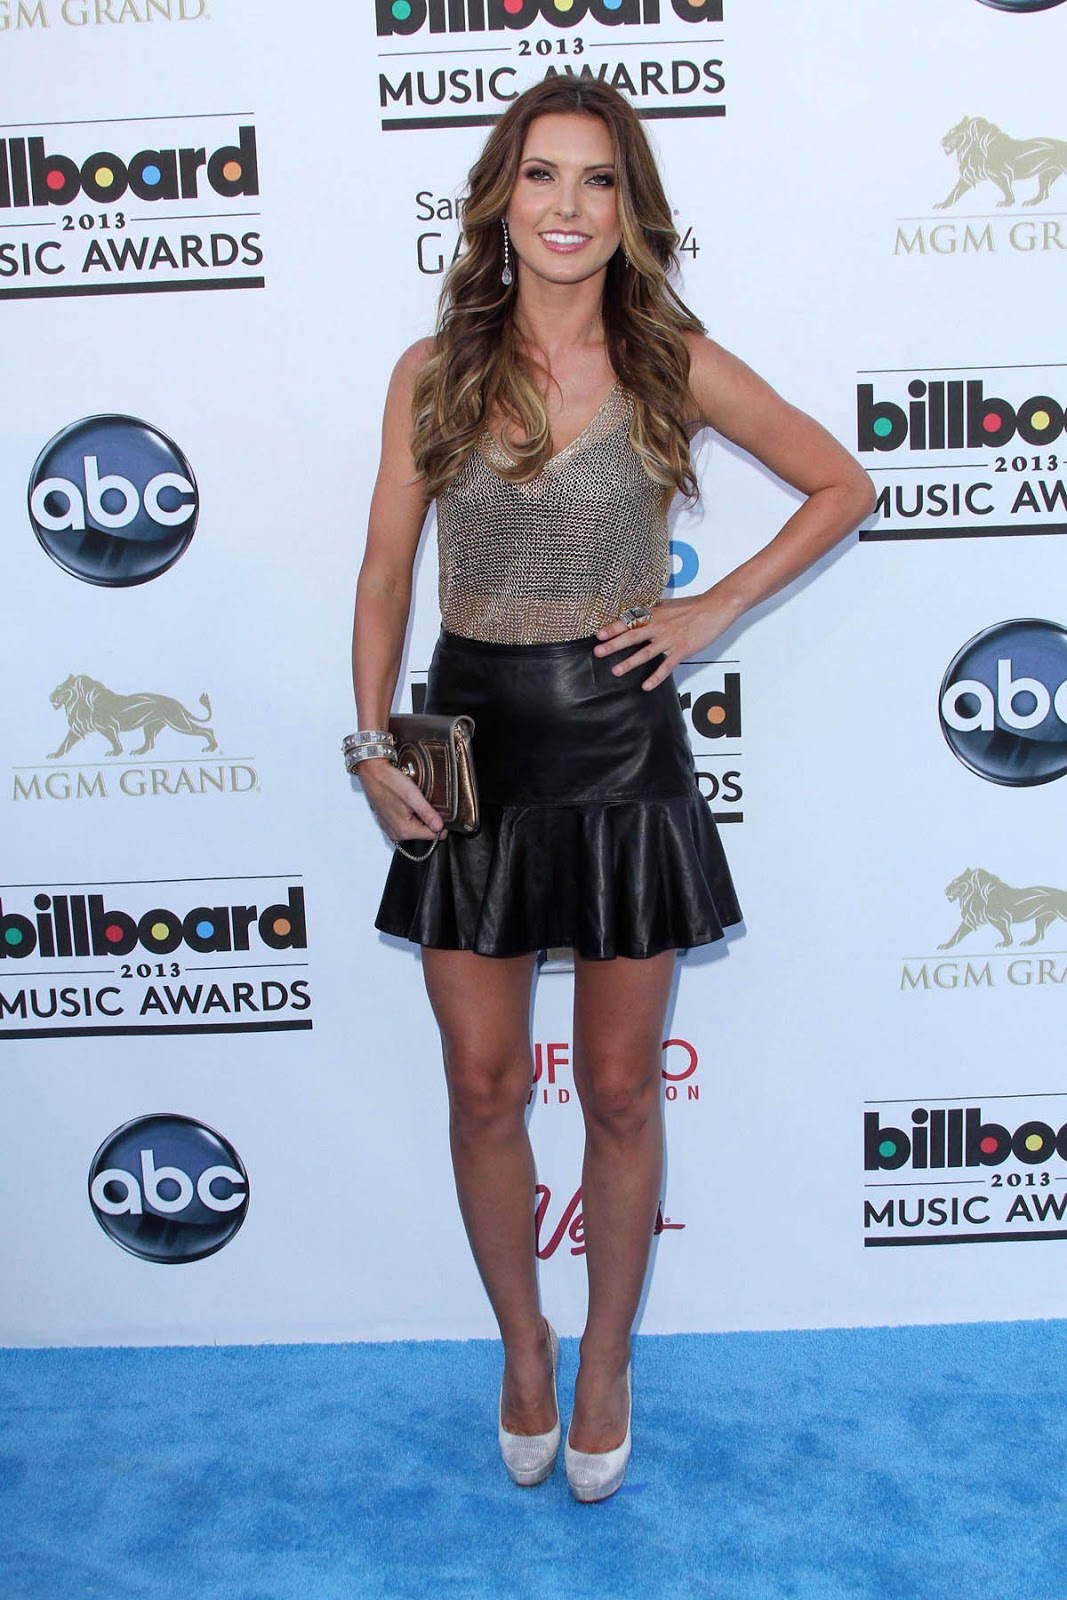 upskirt red capet Audrina Patridge: Again, relevancy? 'The Hills' has been over for years. I'm a little annoyed that I like her skirt. Therefore, I hate her.